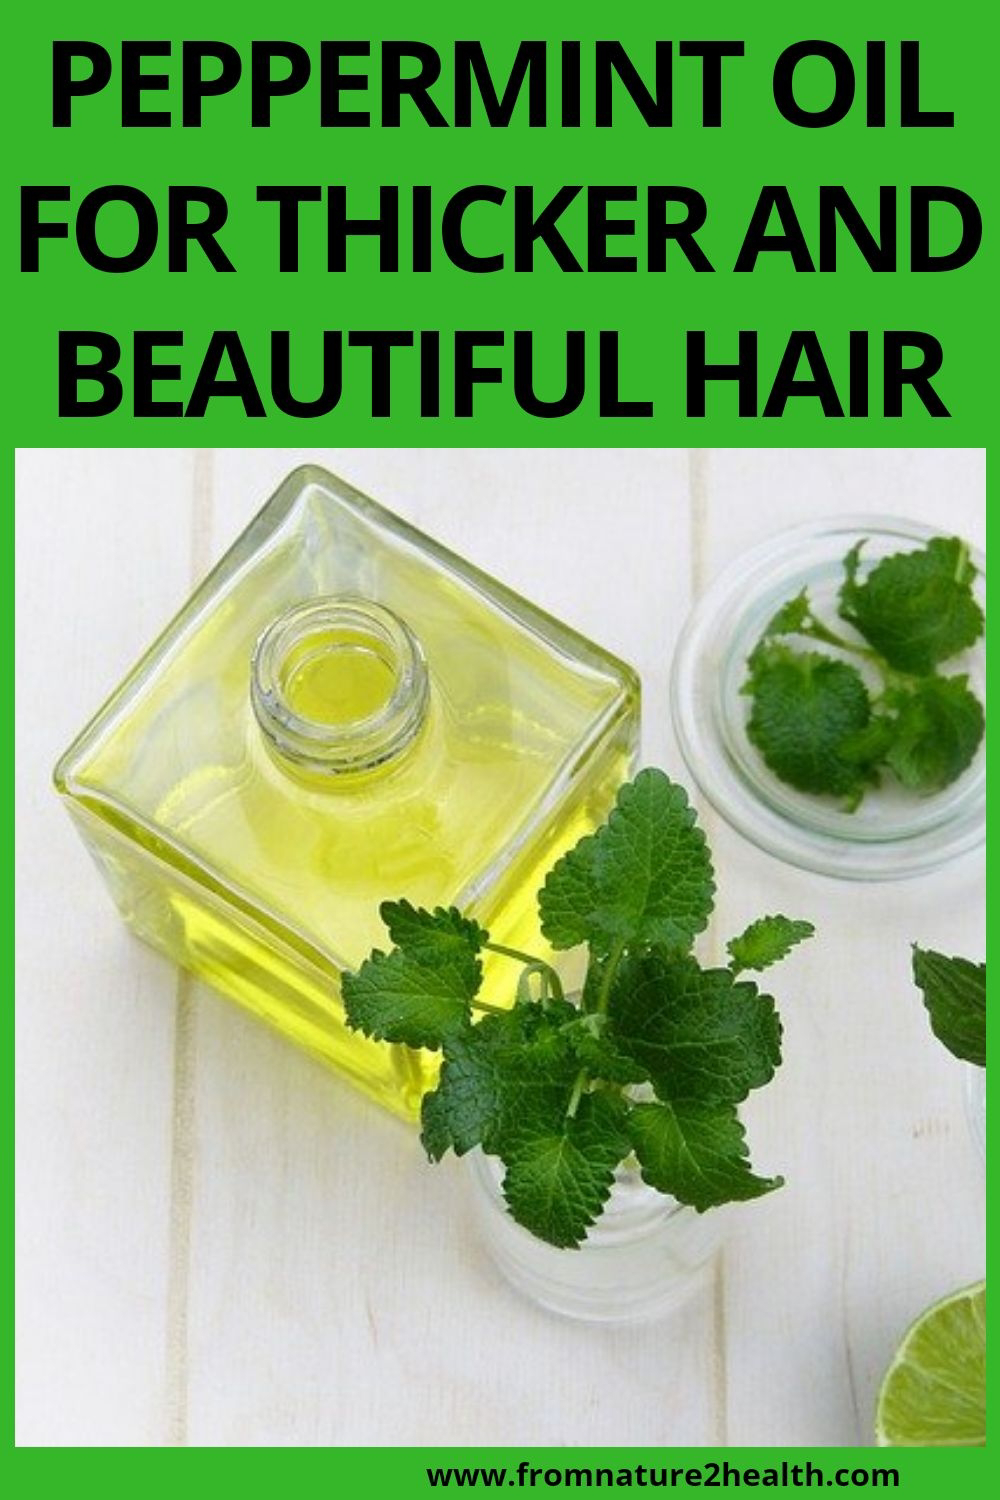 Peppermint Oil for Thicker and Beautiful Hair